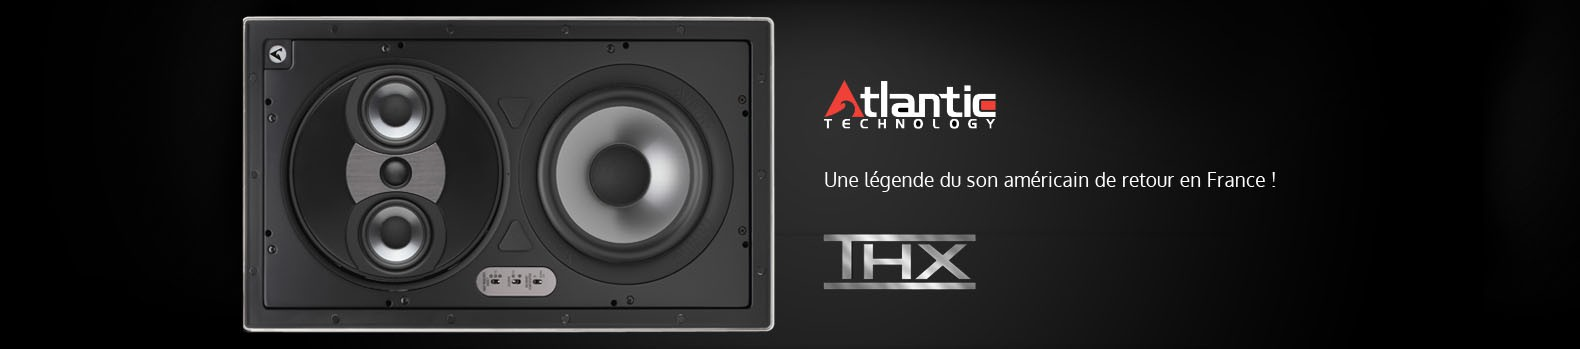 Atlantic Technology de retour en France !